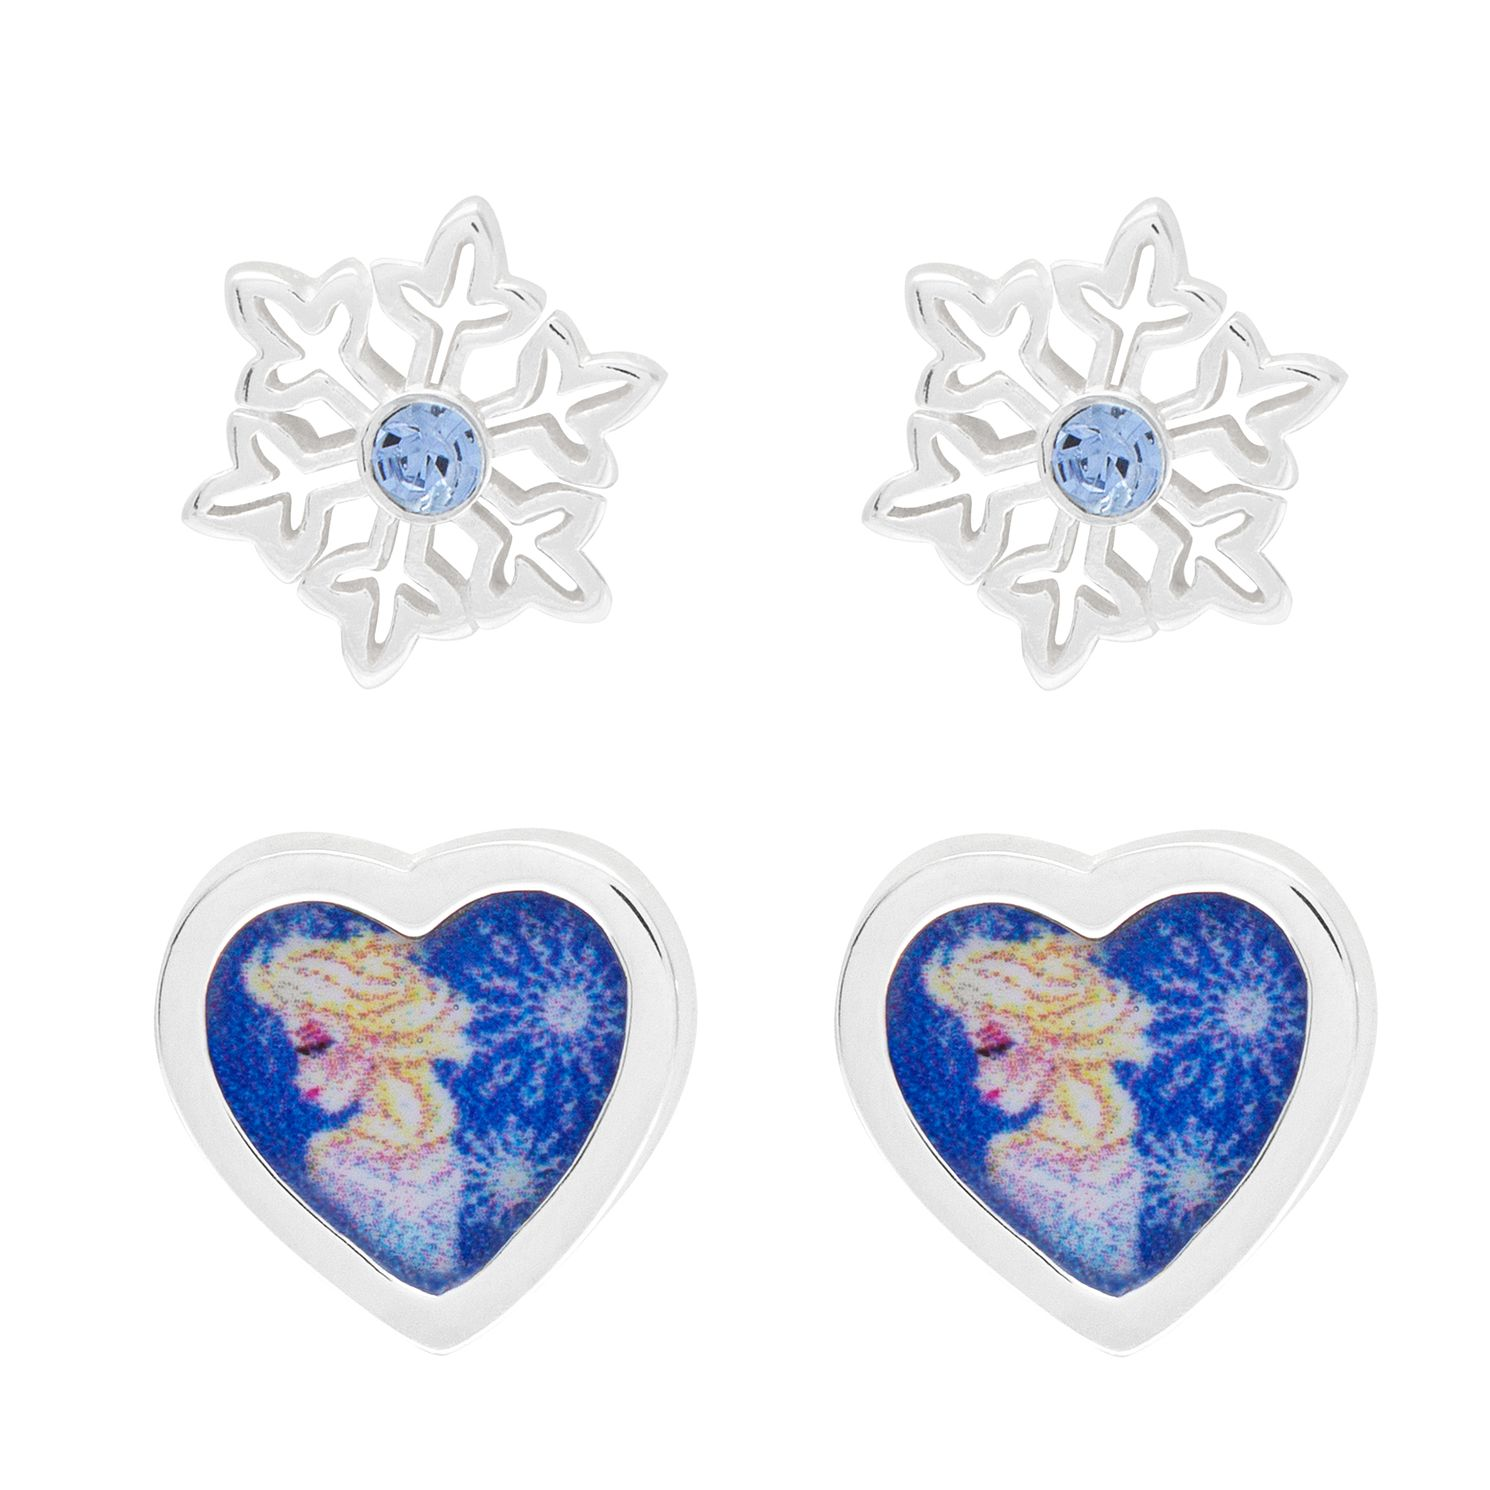 Disney Children's Frozen Silver Stud Earrings Gift Set - Product number 6003710